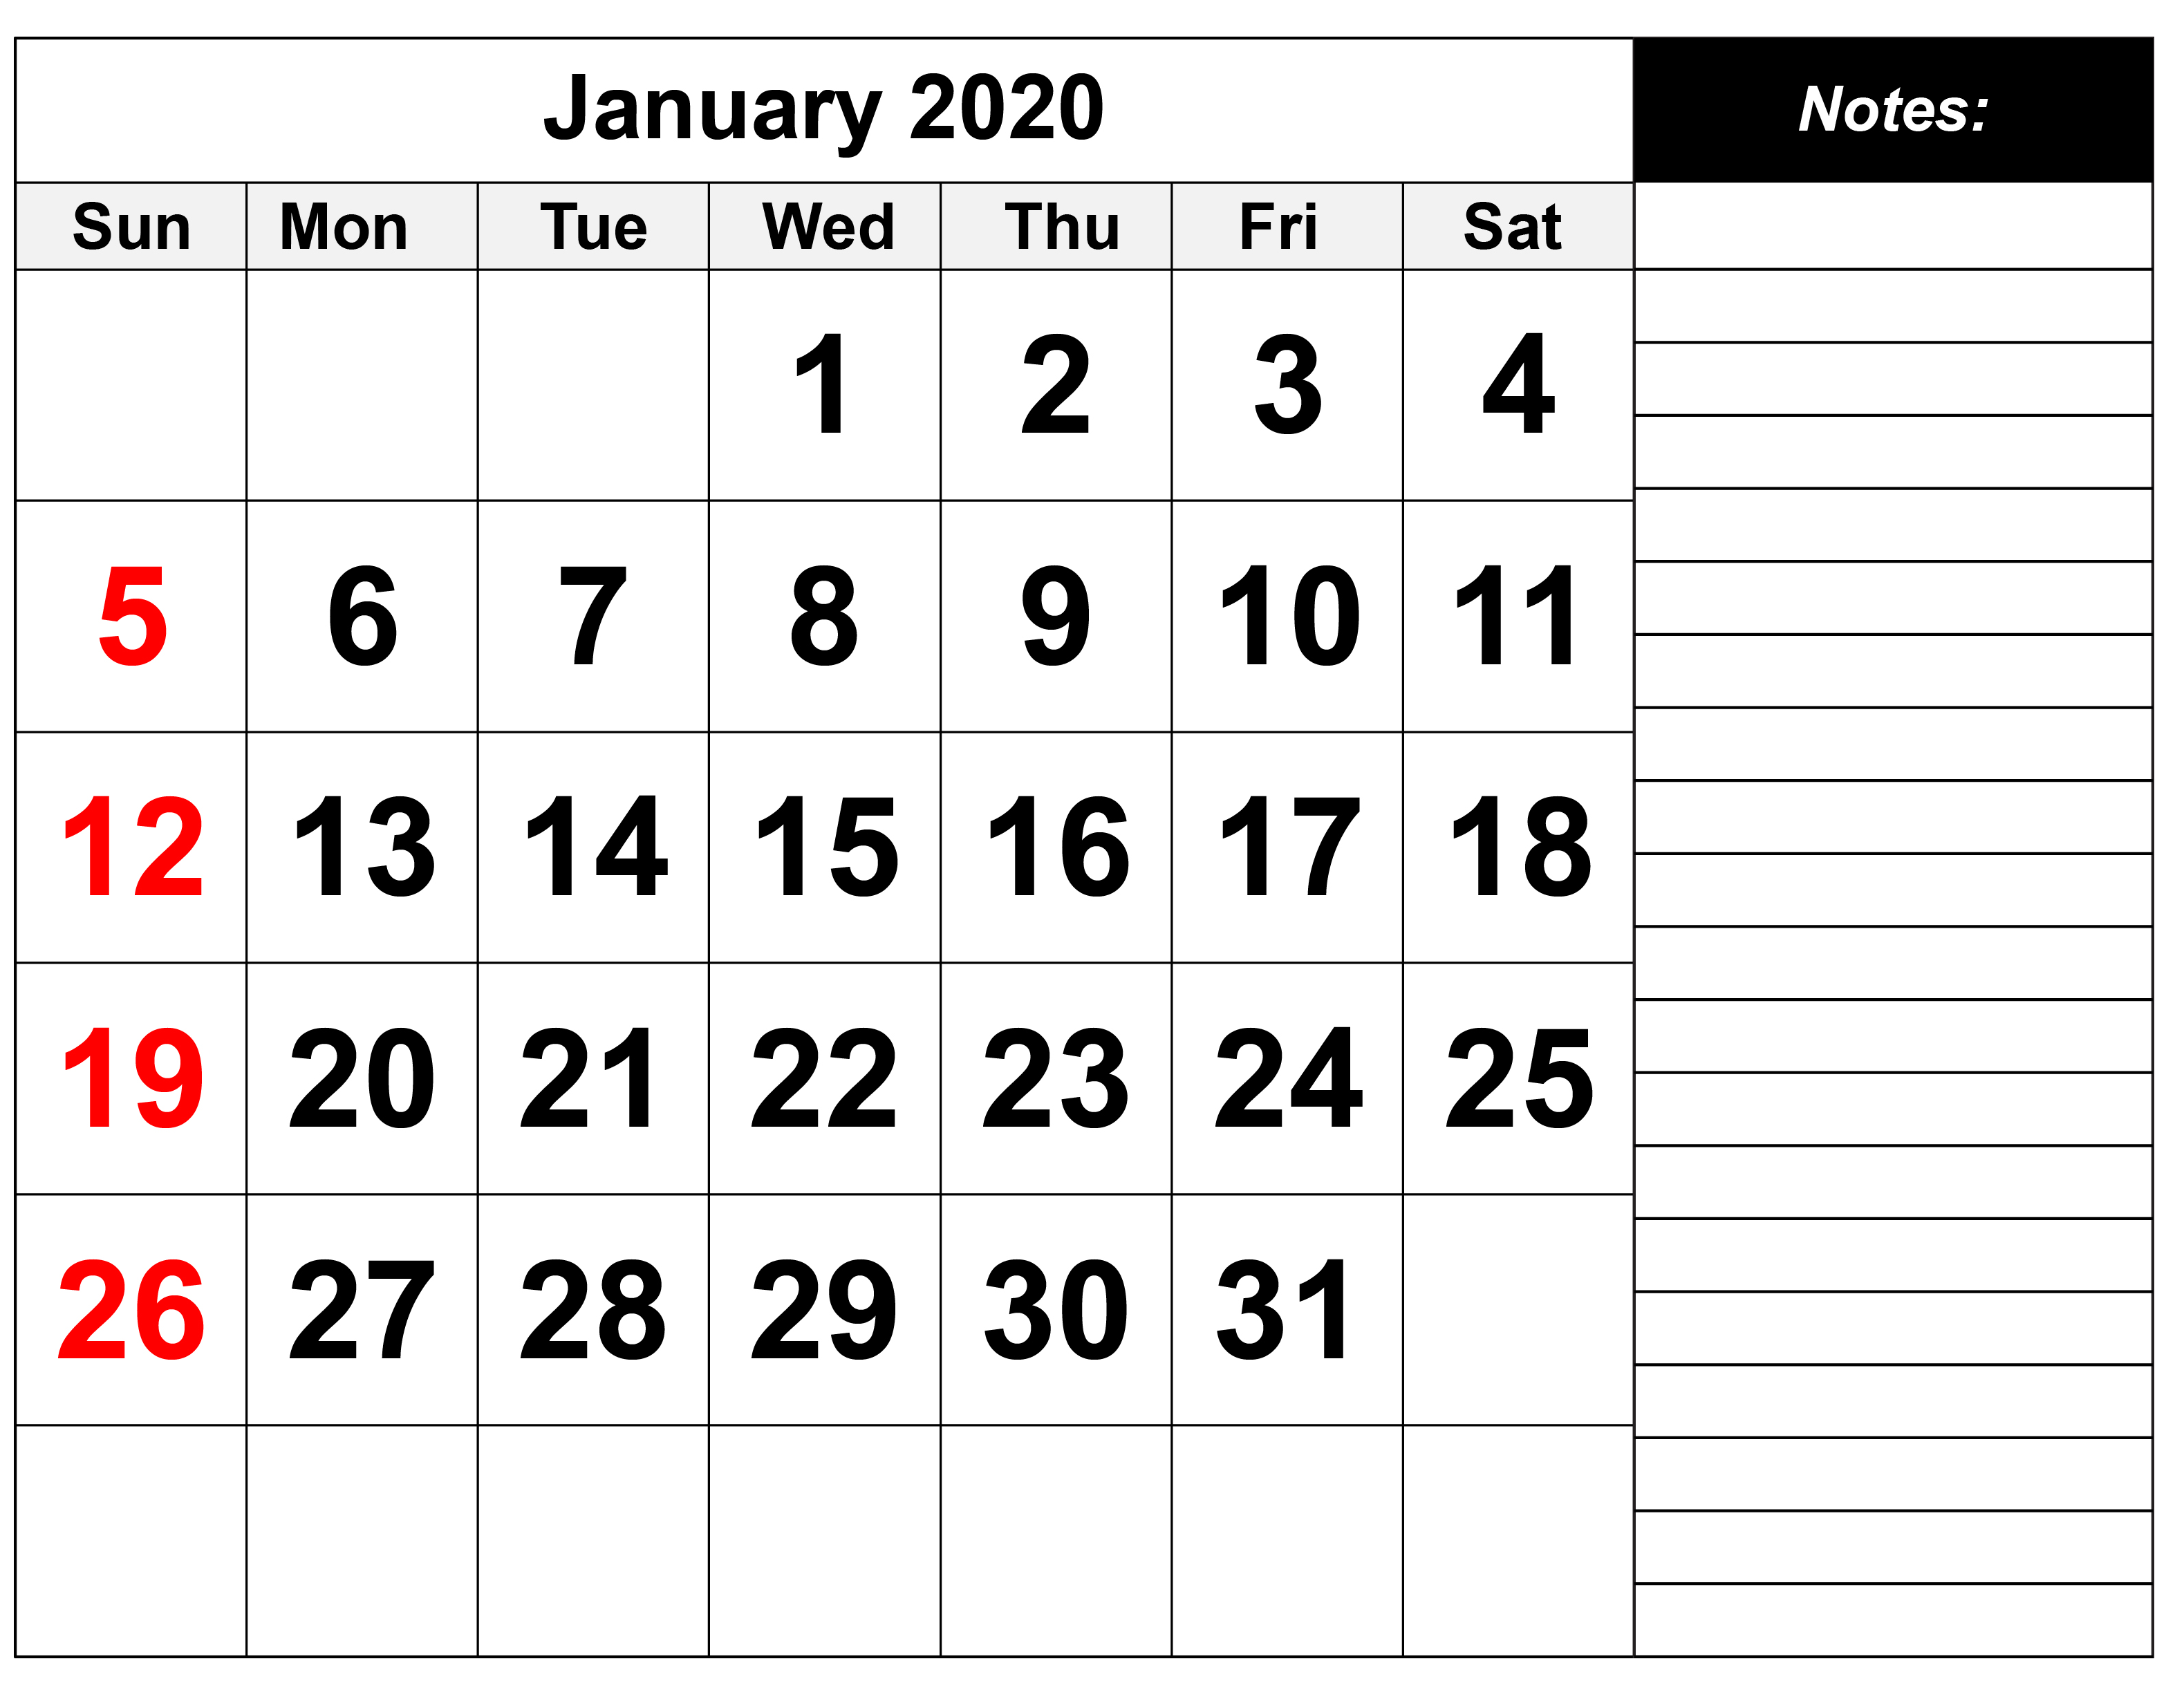 January 2020 Calendar With Holidays USA